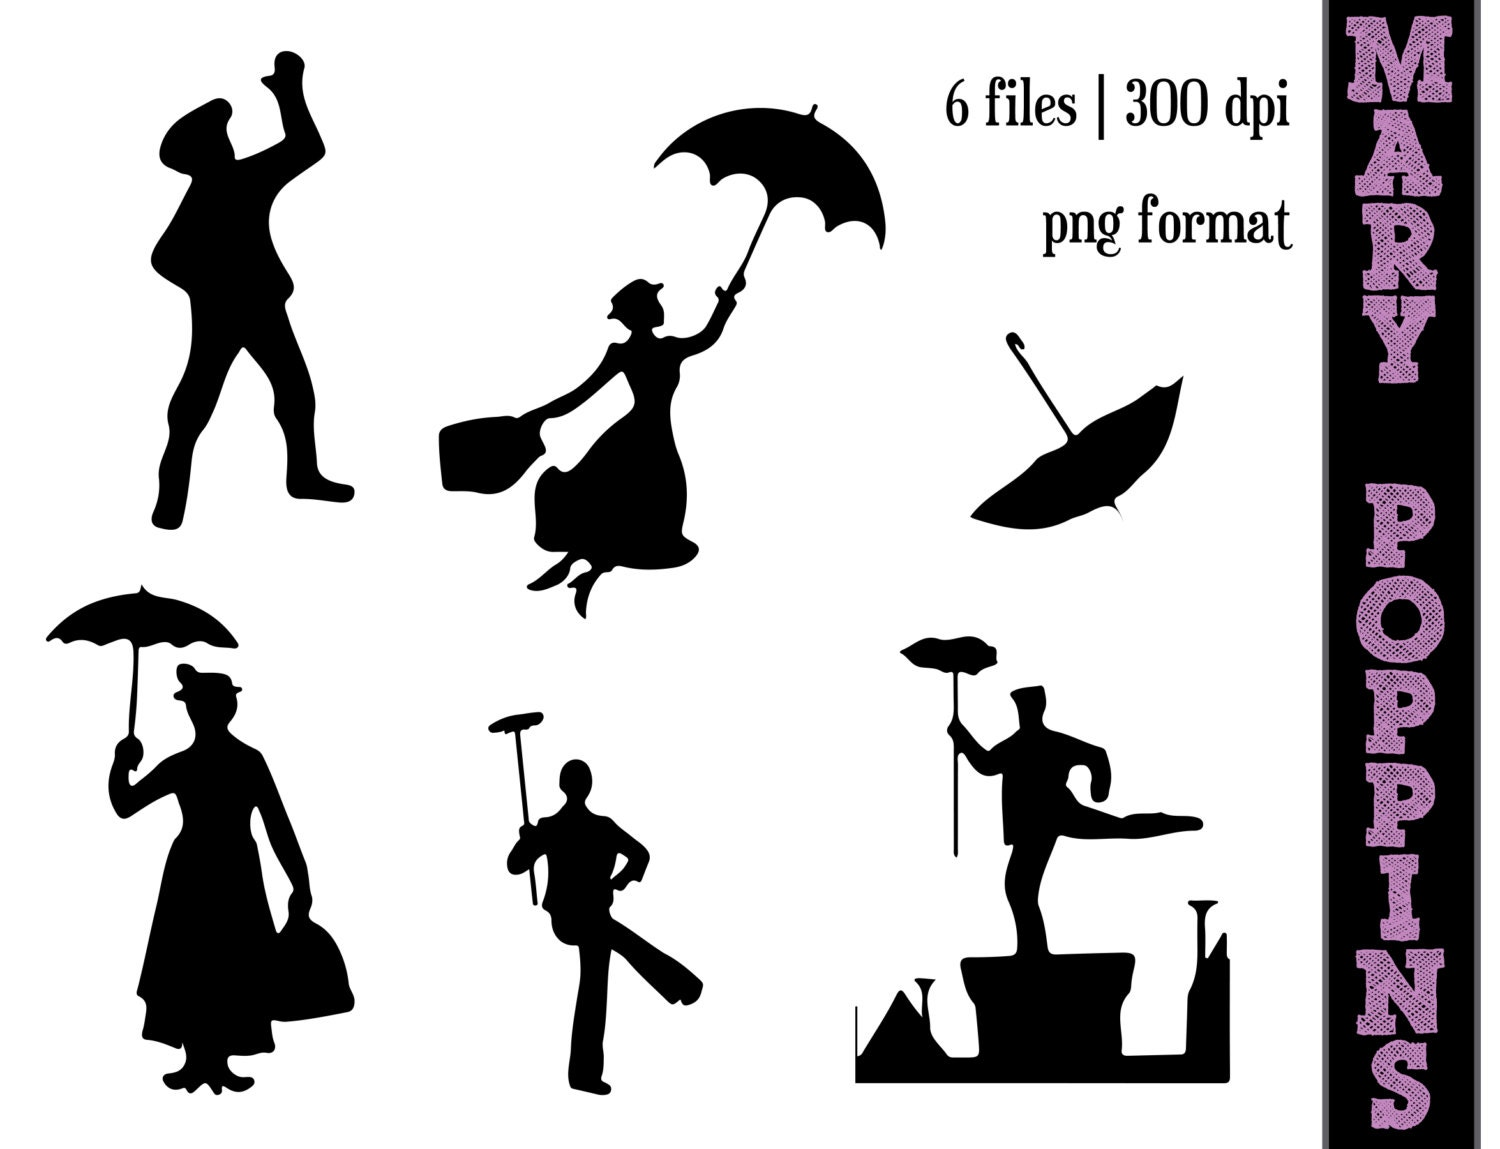 Mary Poppins Chimney Sweep Silhouette Images Image Gallery london m...